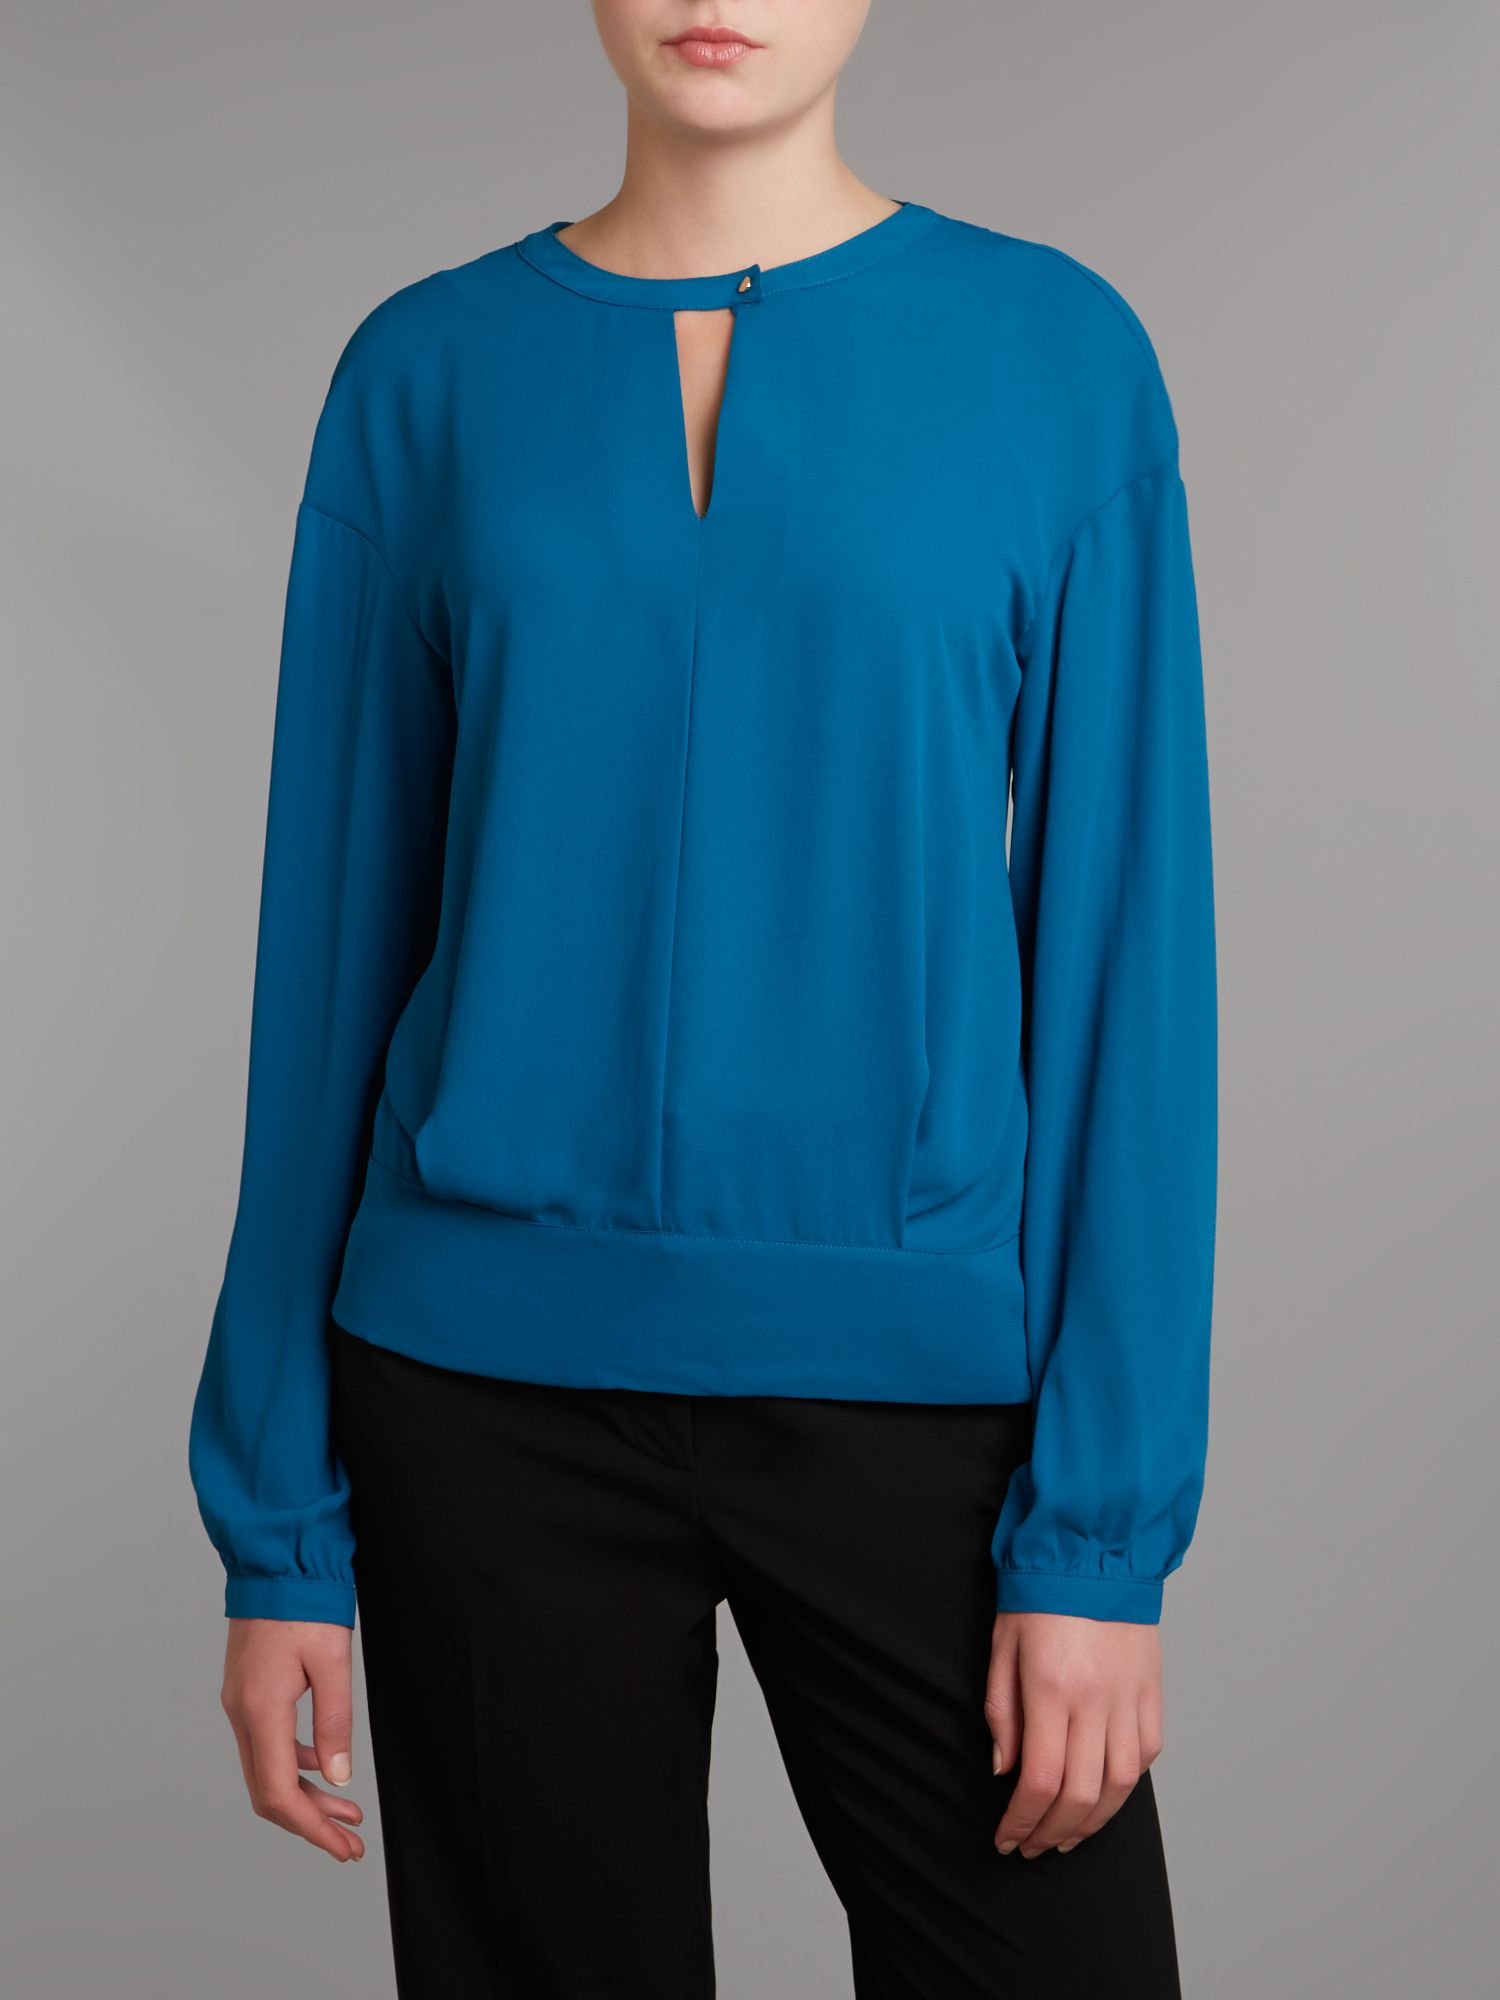 Drop Shoulder Blouse with Banded Hem